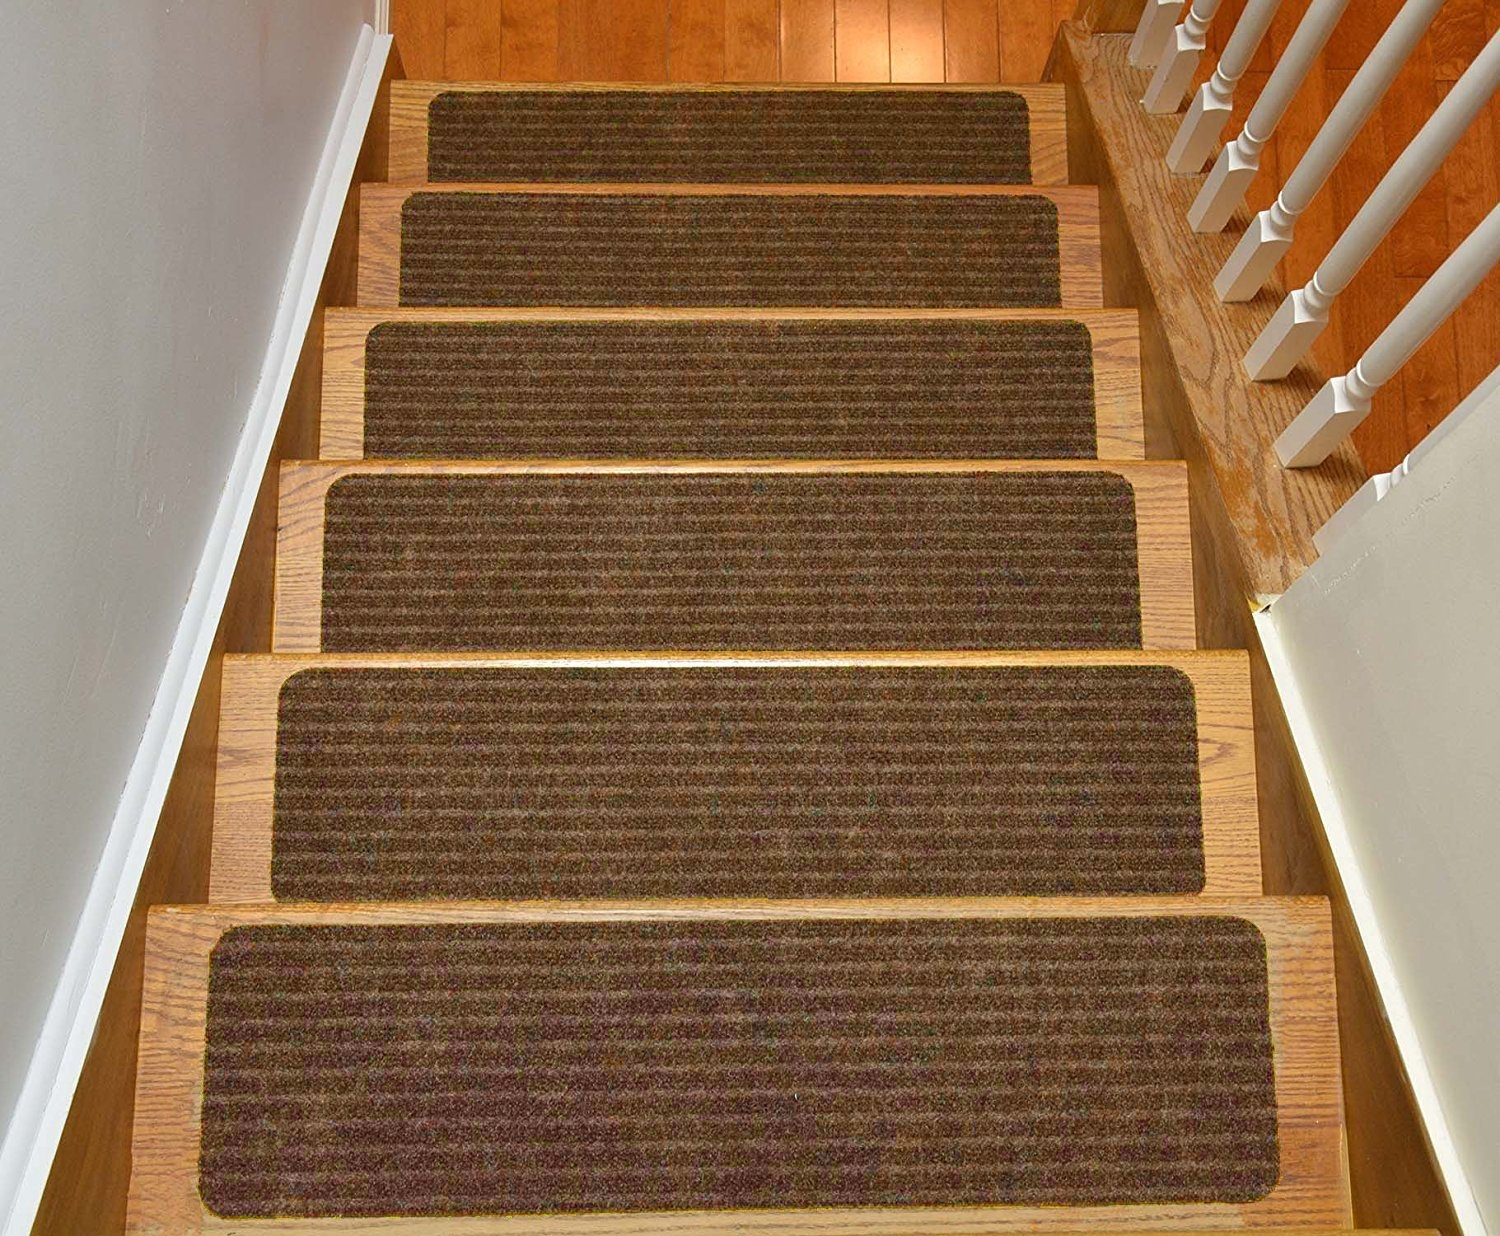 Stair Treads Collection Set Of 13 Indoor Skid Slip Resistant Brown Inside Skid Resistant Stair Treads (View 9 of 15)